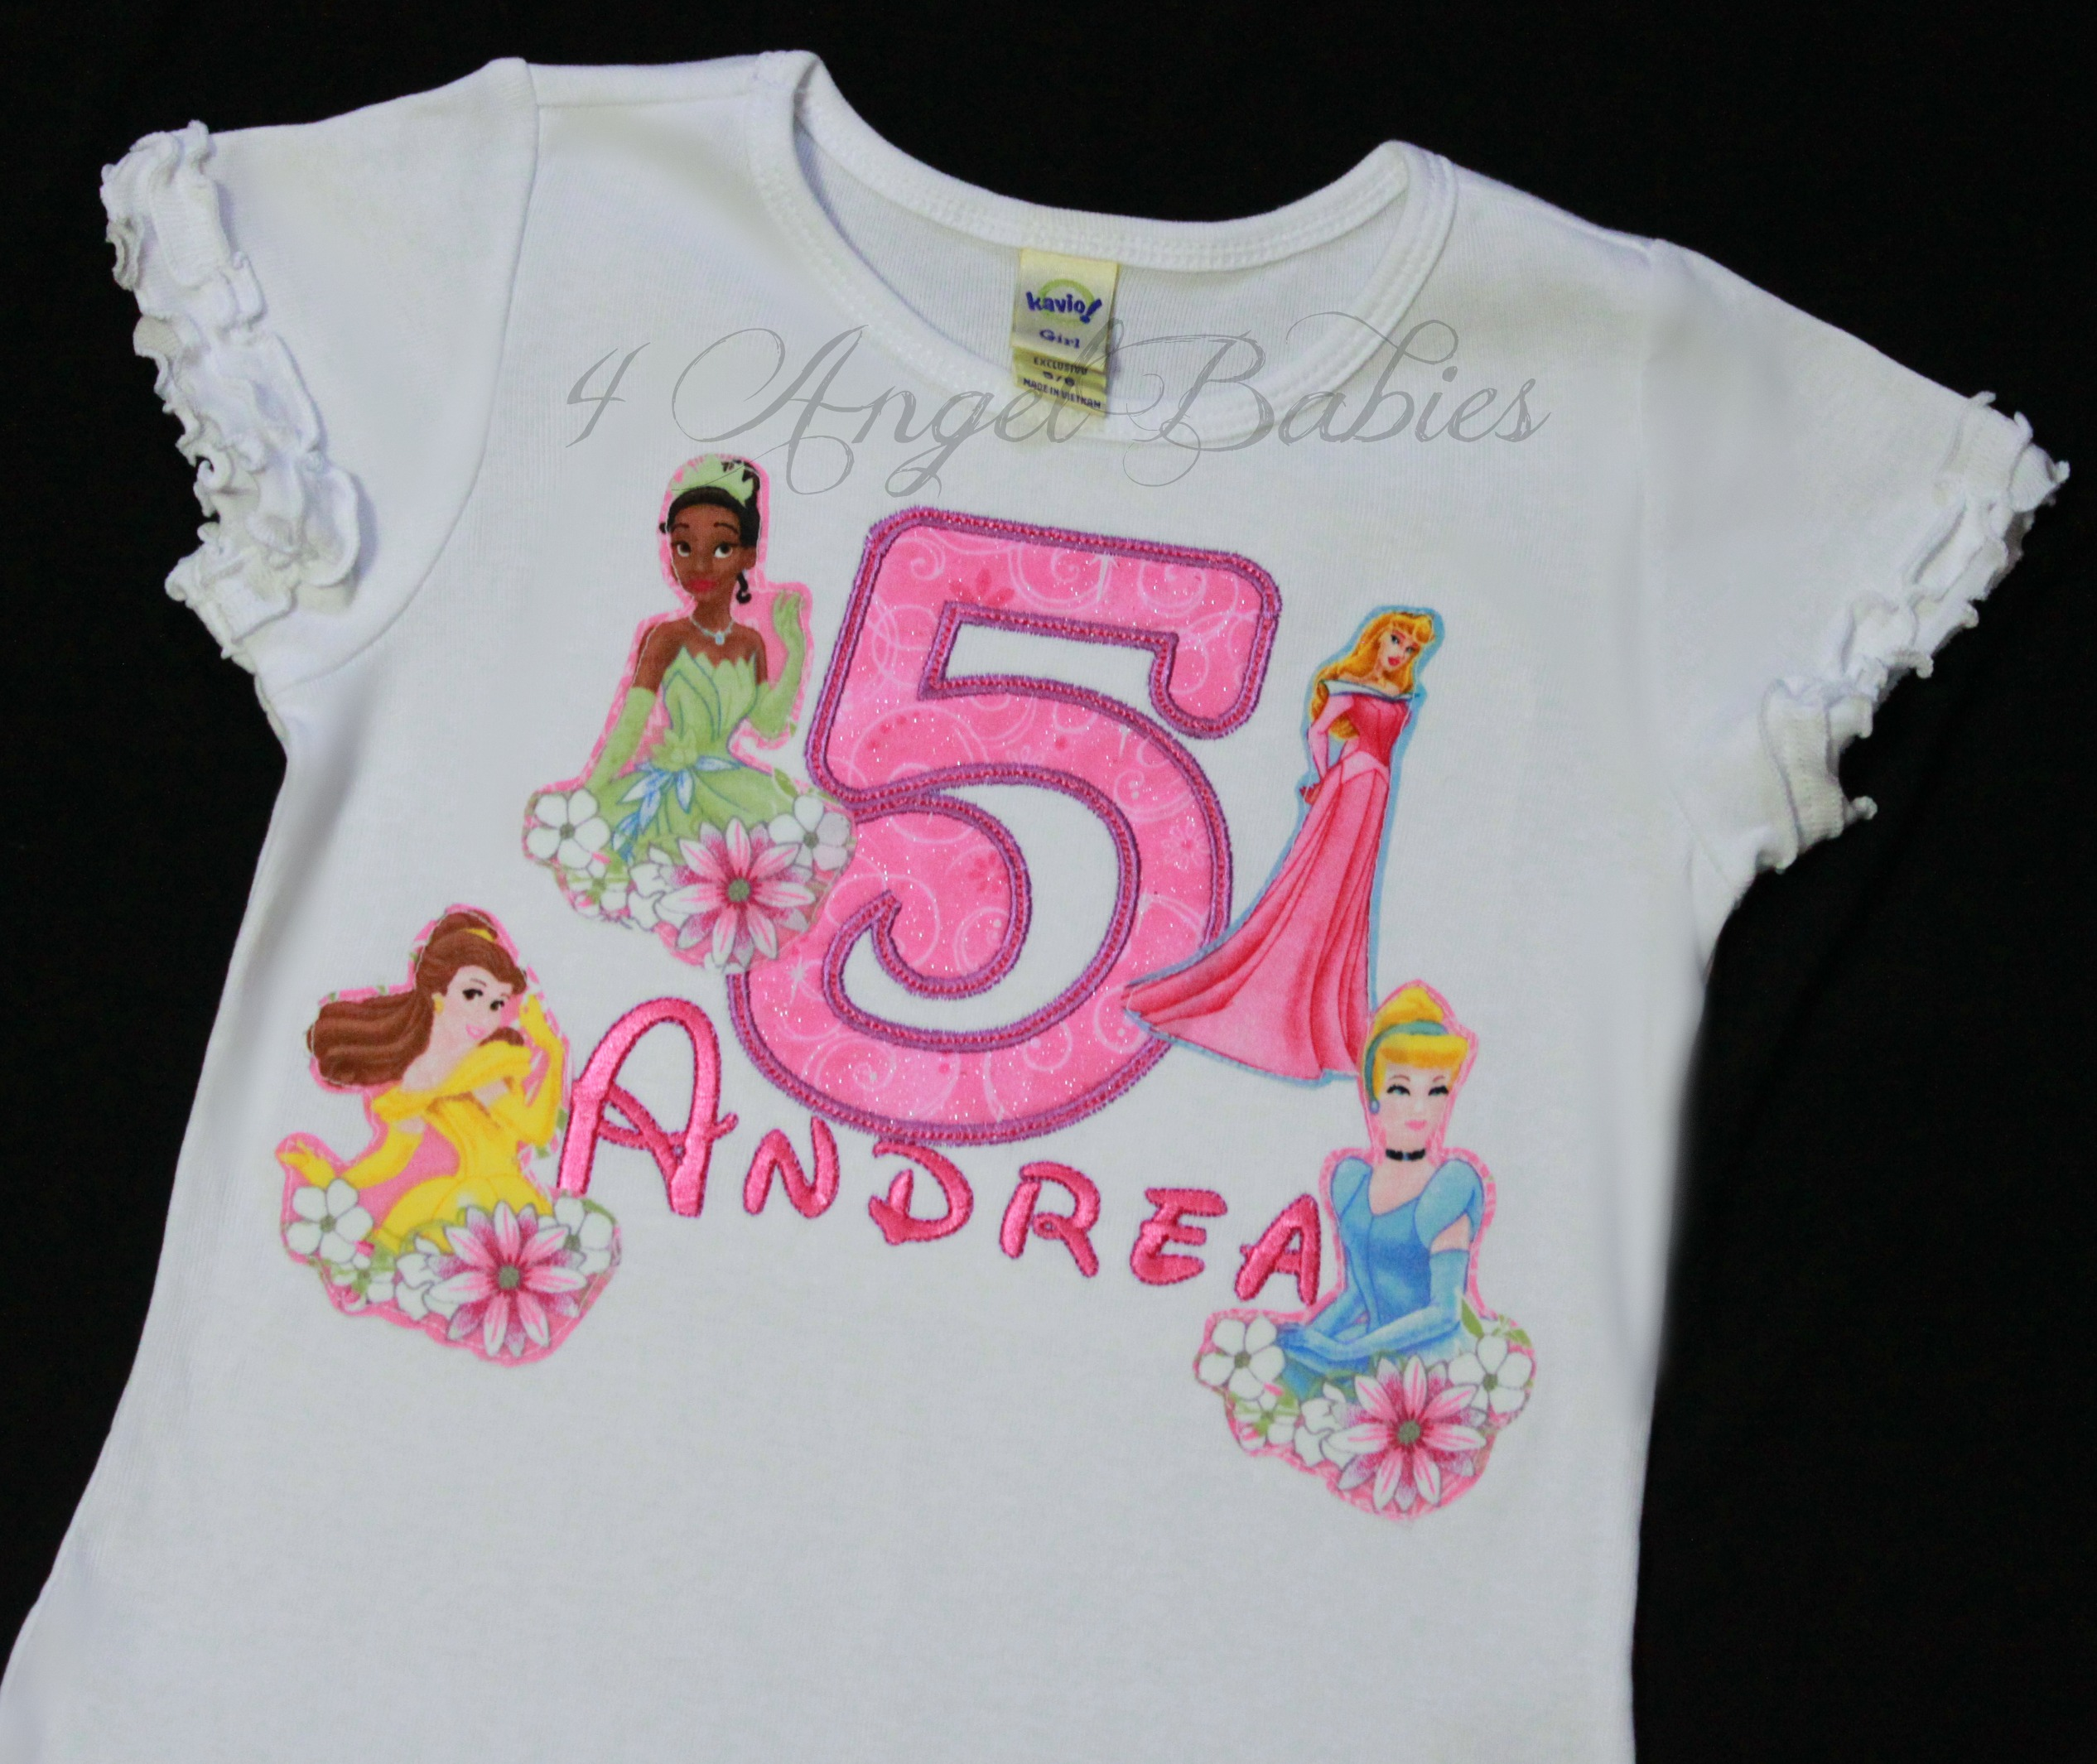 Disney 4 Princesses Girls Birthday Top Ariel Aurora Tiana Belle,